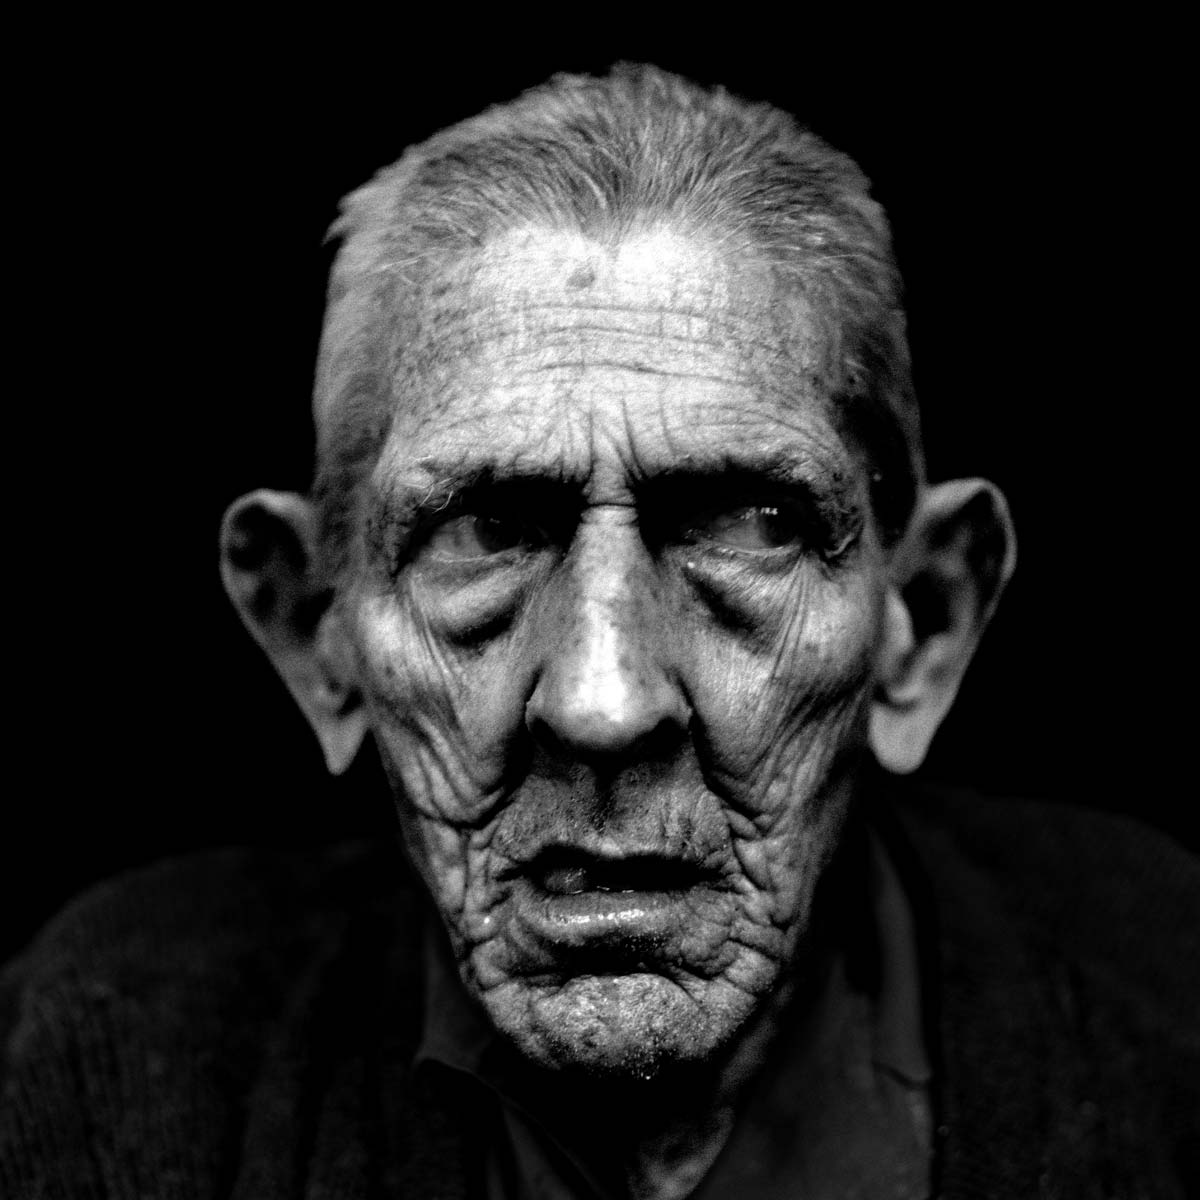 elderly man portrait - photo #17